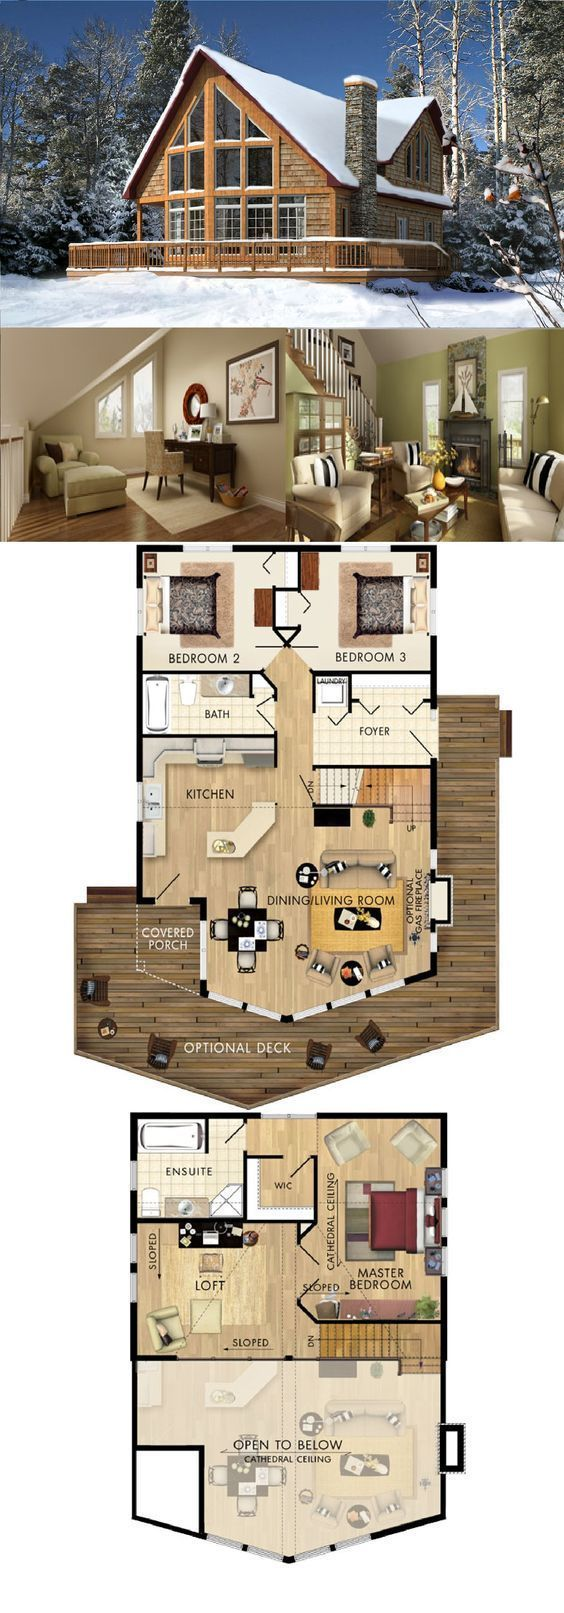 Beaver Homes & Cottages - Beauport II :: 1600 sq. ft.